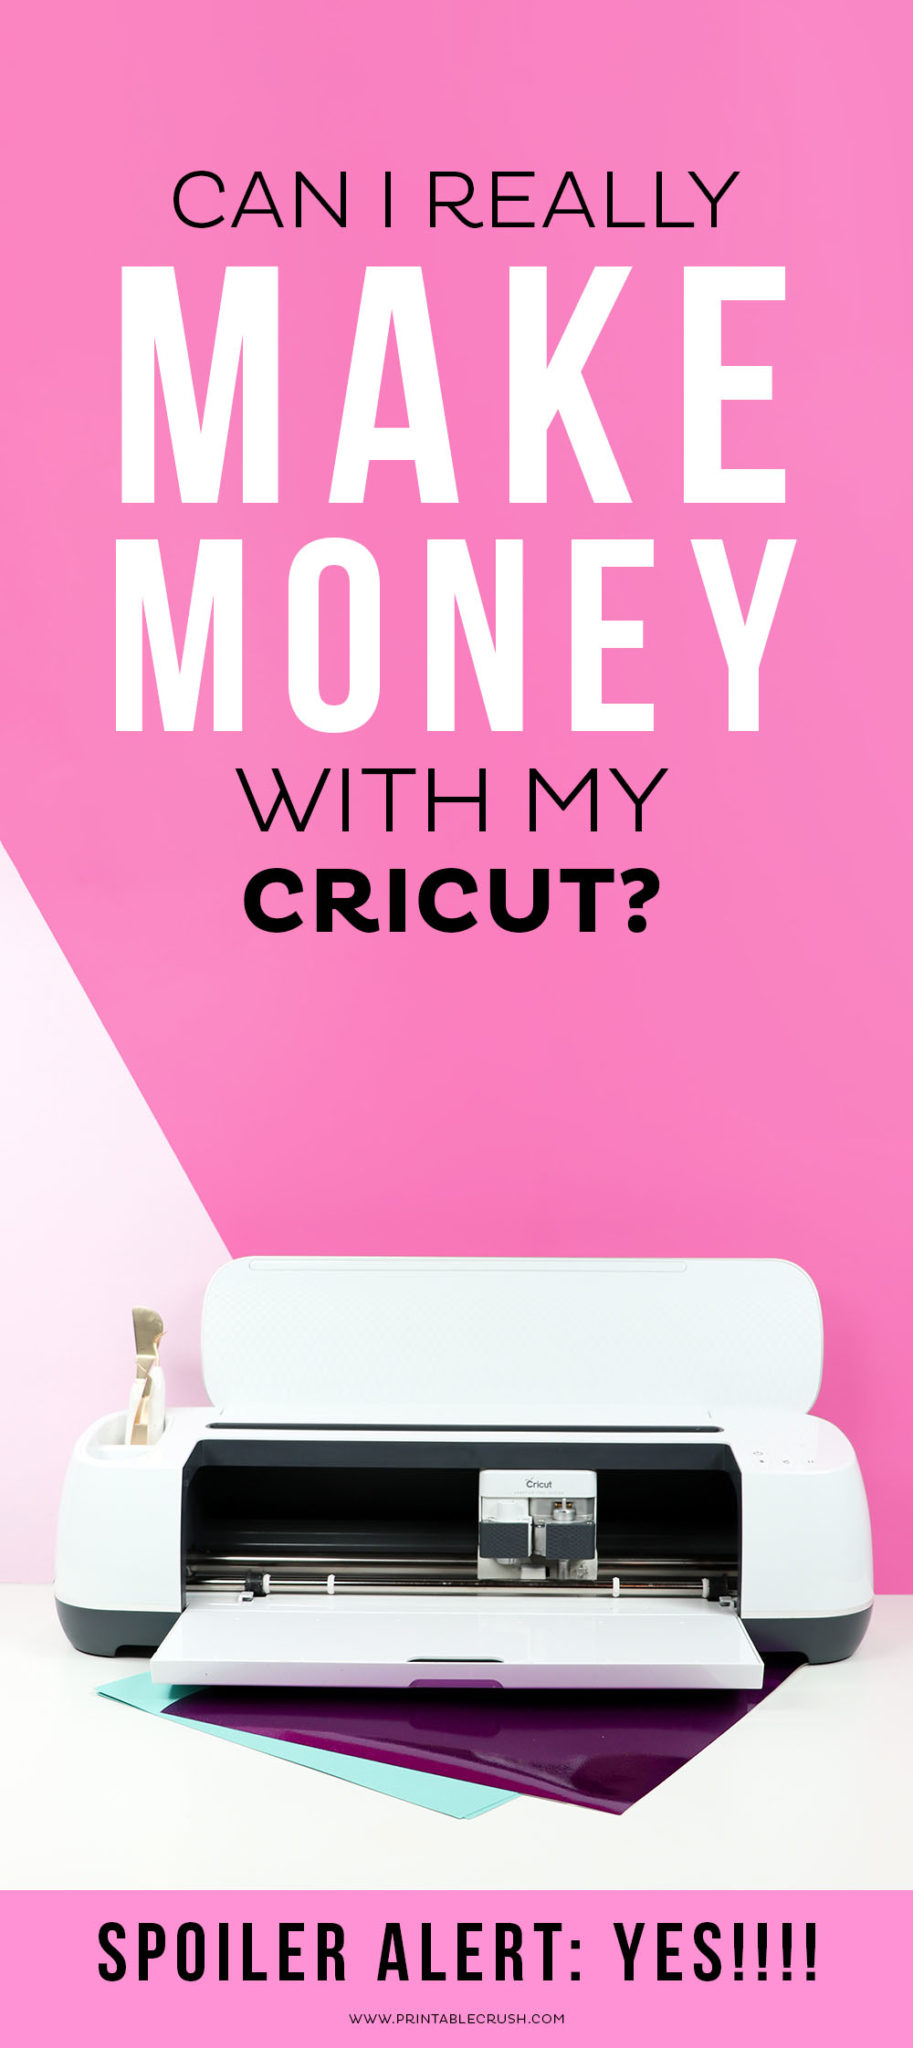 Can I Make Money with my Cricut? I'm telling you 5 ways to start right now! #cricutcreated #howtomakemoney #bloggingtips #businesstips #cricuttutorials #cricutproject #cricutbusiness #business #craftbusiness #paperbusiness